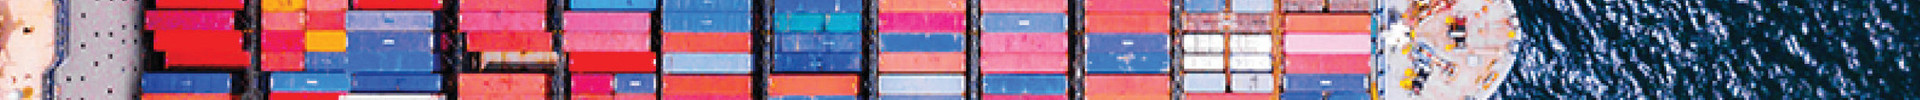 Illicit Trade: Misuse of Containerized Maritime Shipping in the Global Trade of Counterfeits: